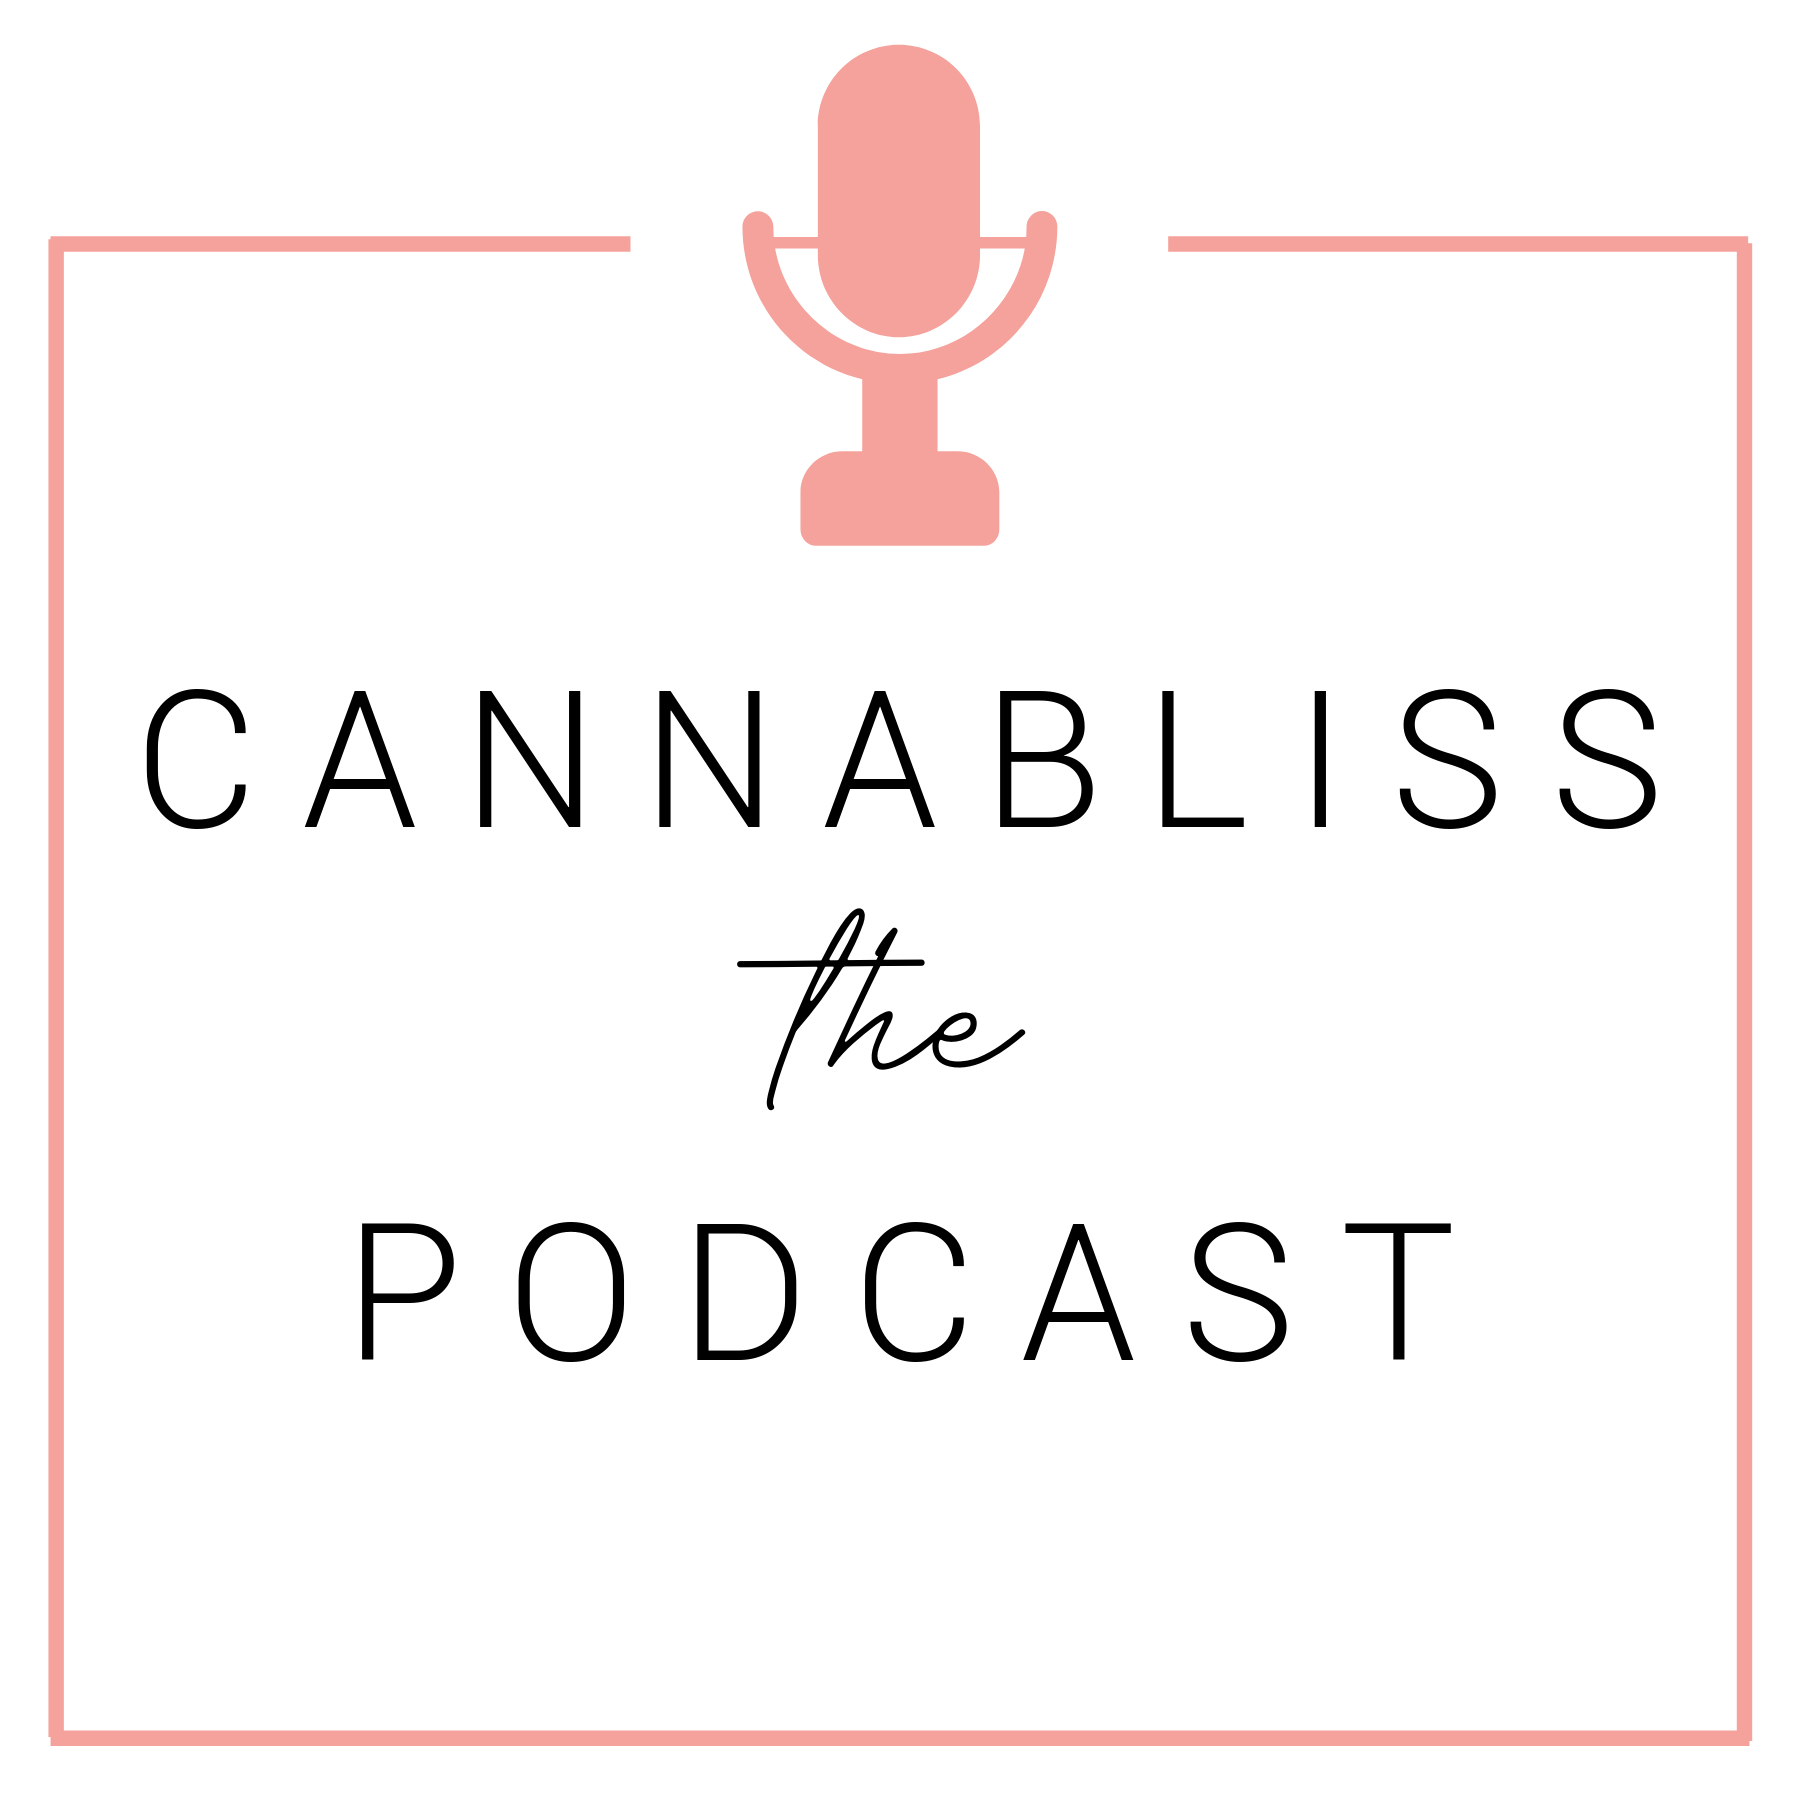 CANNABLISS PODCAST.png